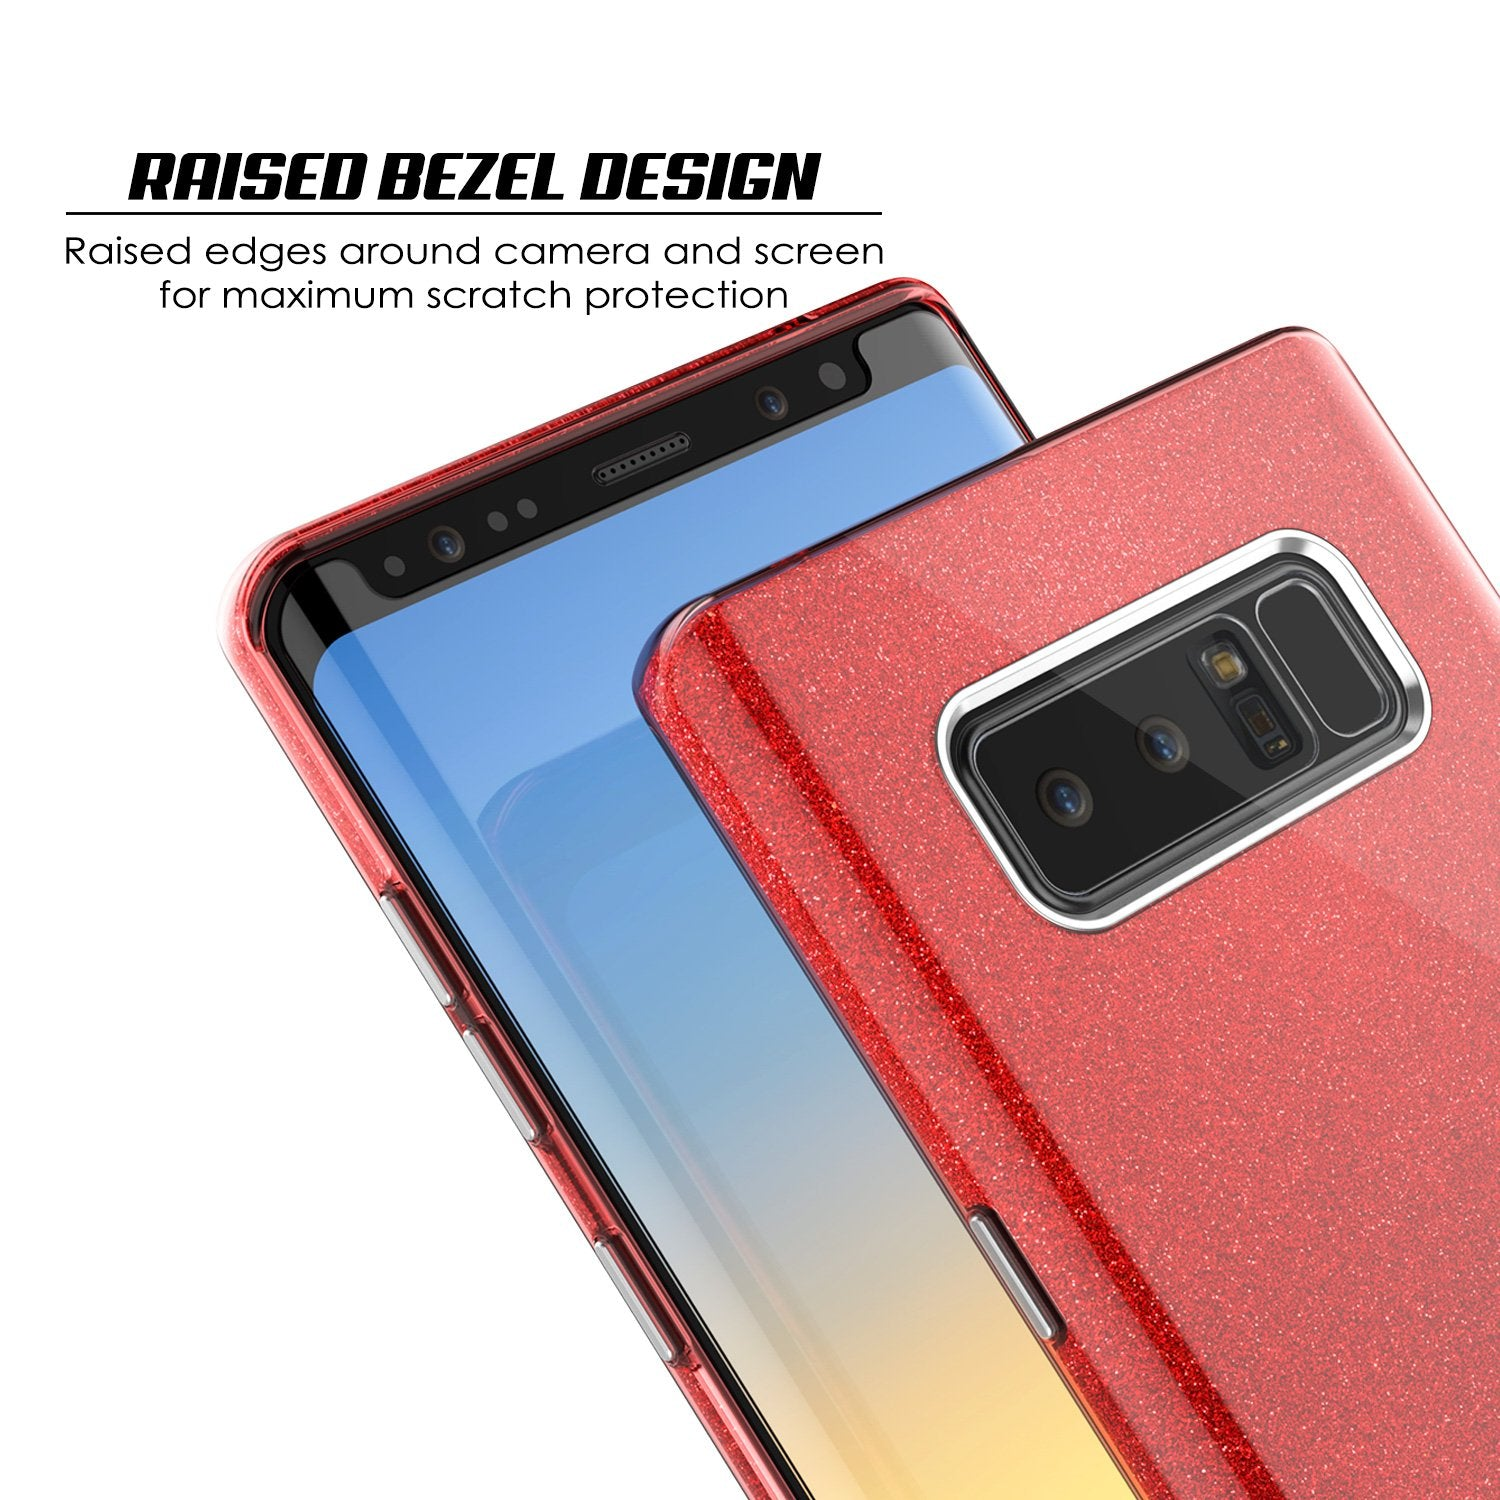 Galaxy Note 8 Case, Punkcase Galactic 2.0 Series Ultra Slim Protective Armor [Red] - PunkCase NZ